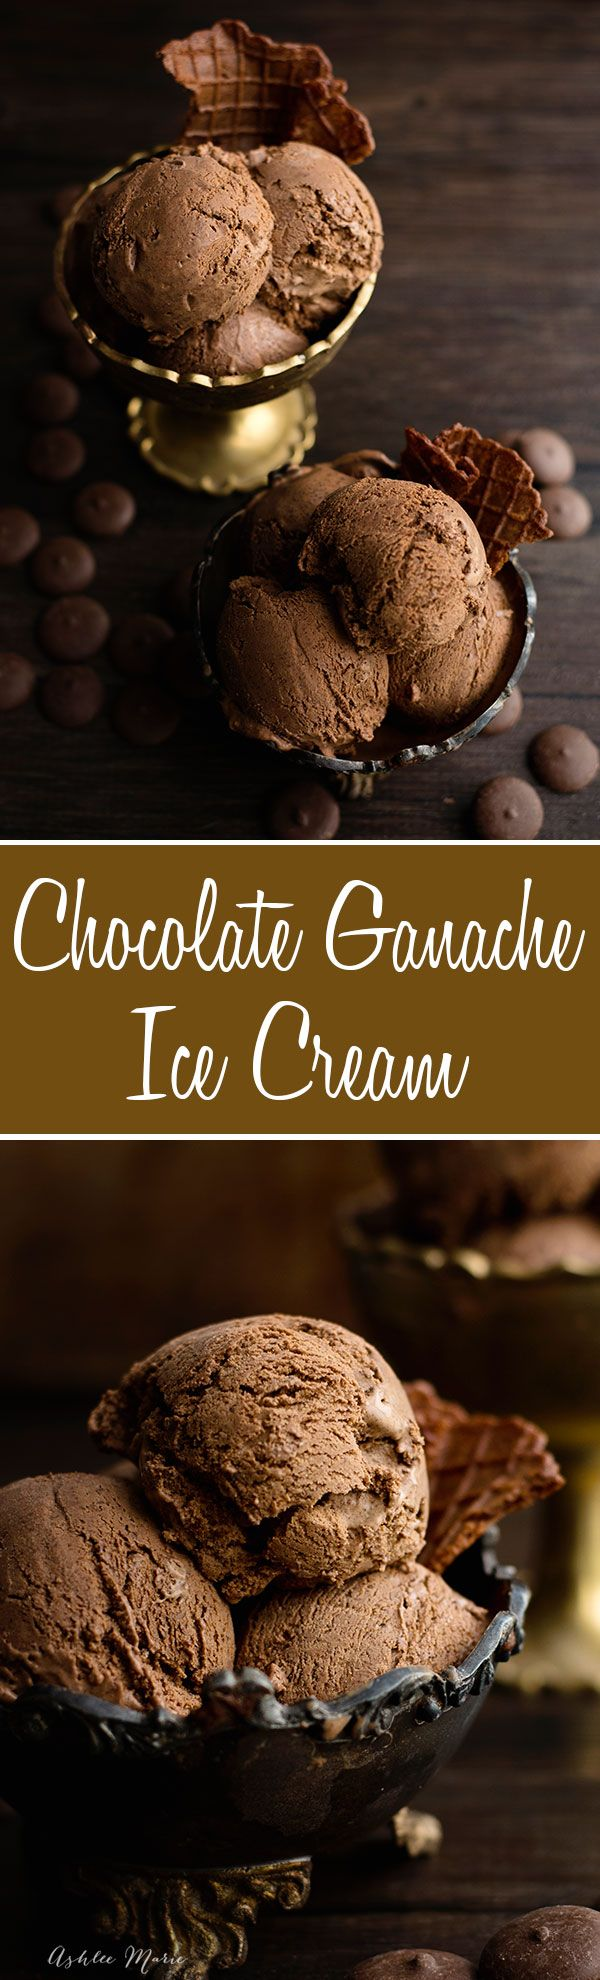 dark chocolate ganache ice cream is the most decadent, rich bite of chocolate ice cream you will ever enjoy